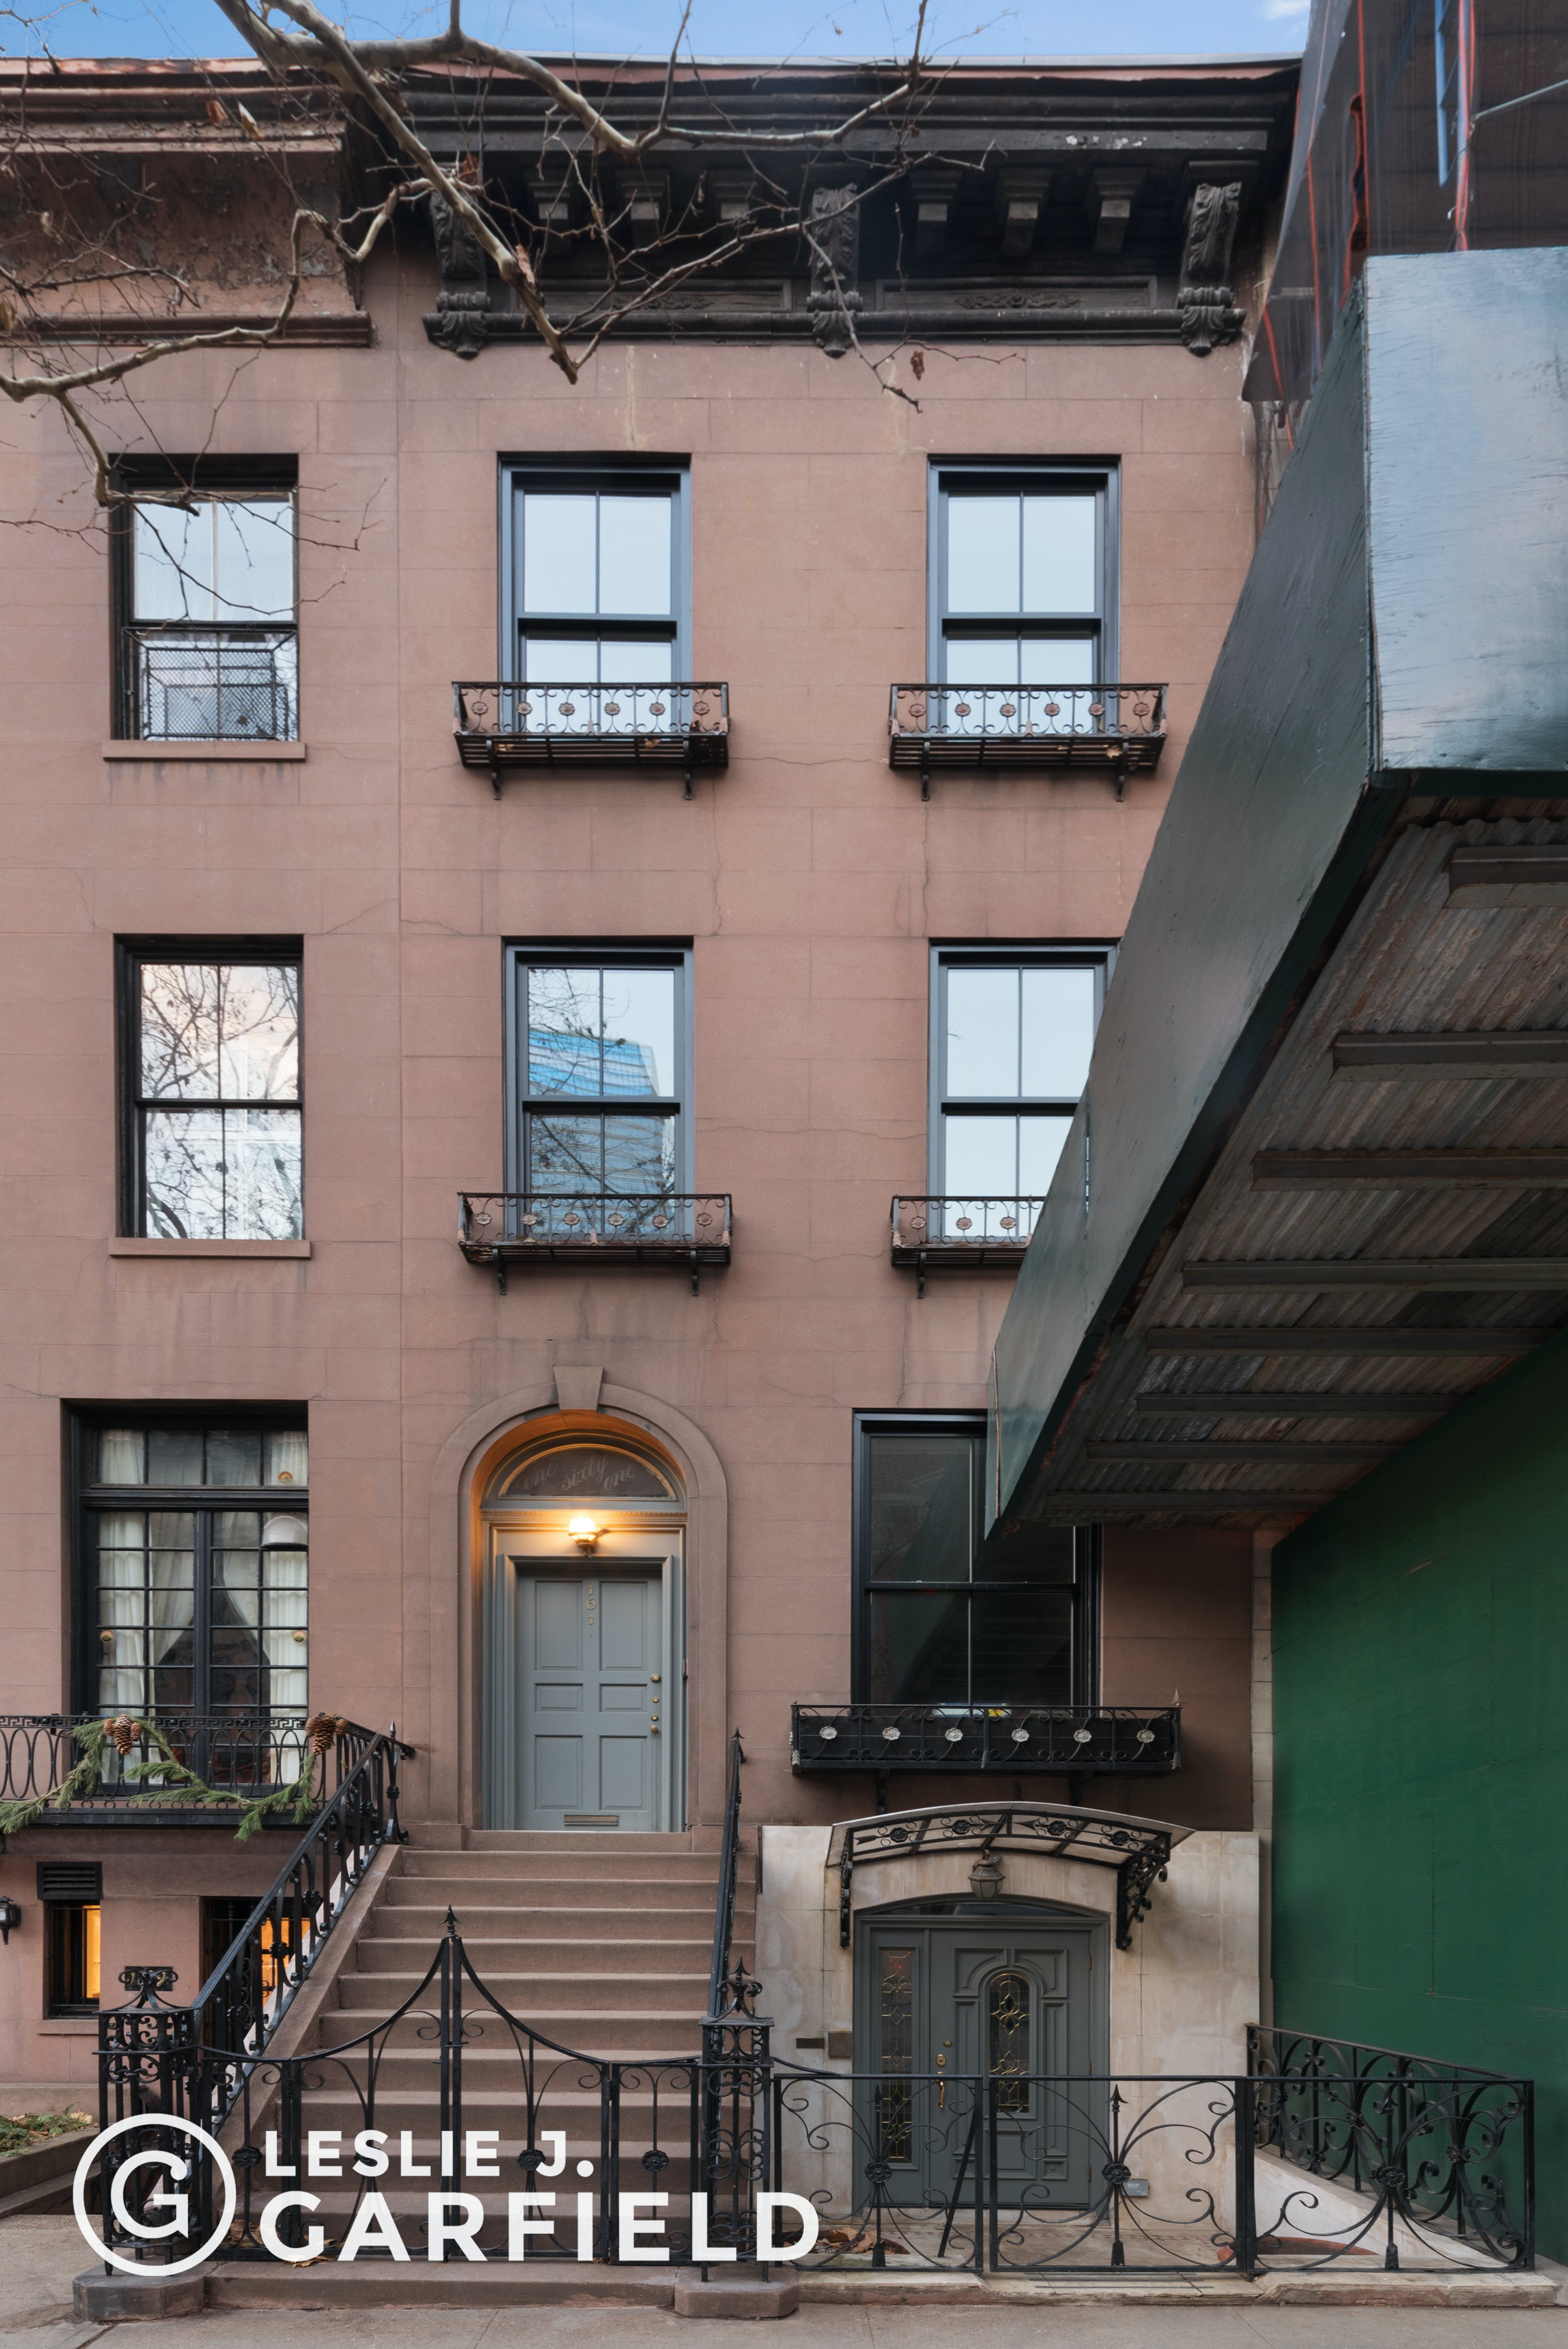 161 East 62nd Street - 43a88703-21d9-4d31-8b43-5bc860f07760 - New York City Townhouse Real Estate